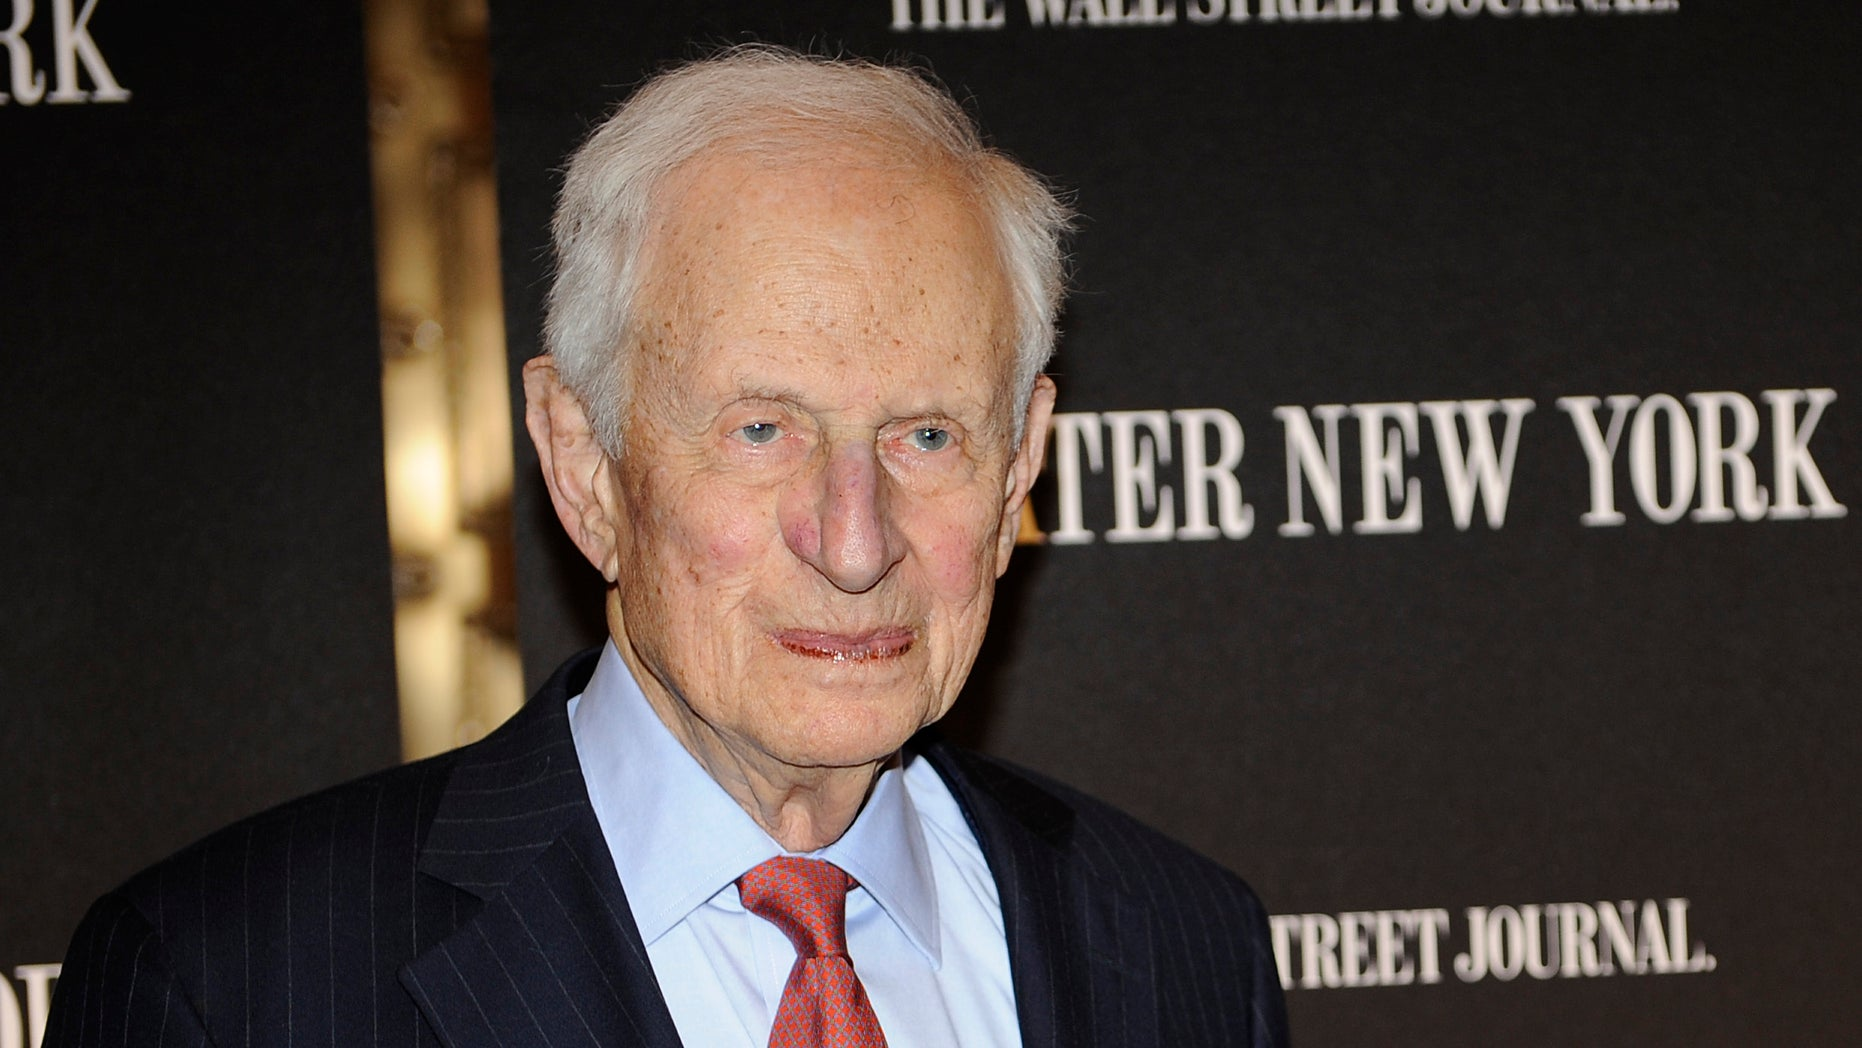 FILE 2010: Former New York City District Attorney Robert Morgenthau attends a gala launch party in New York.